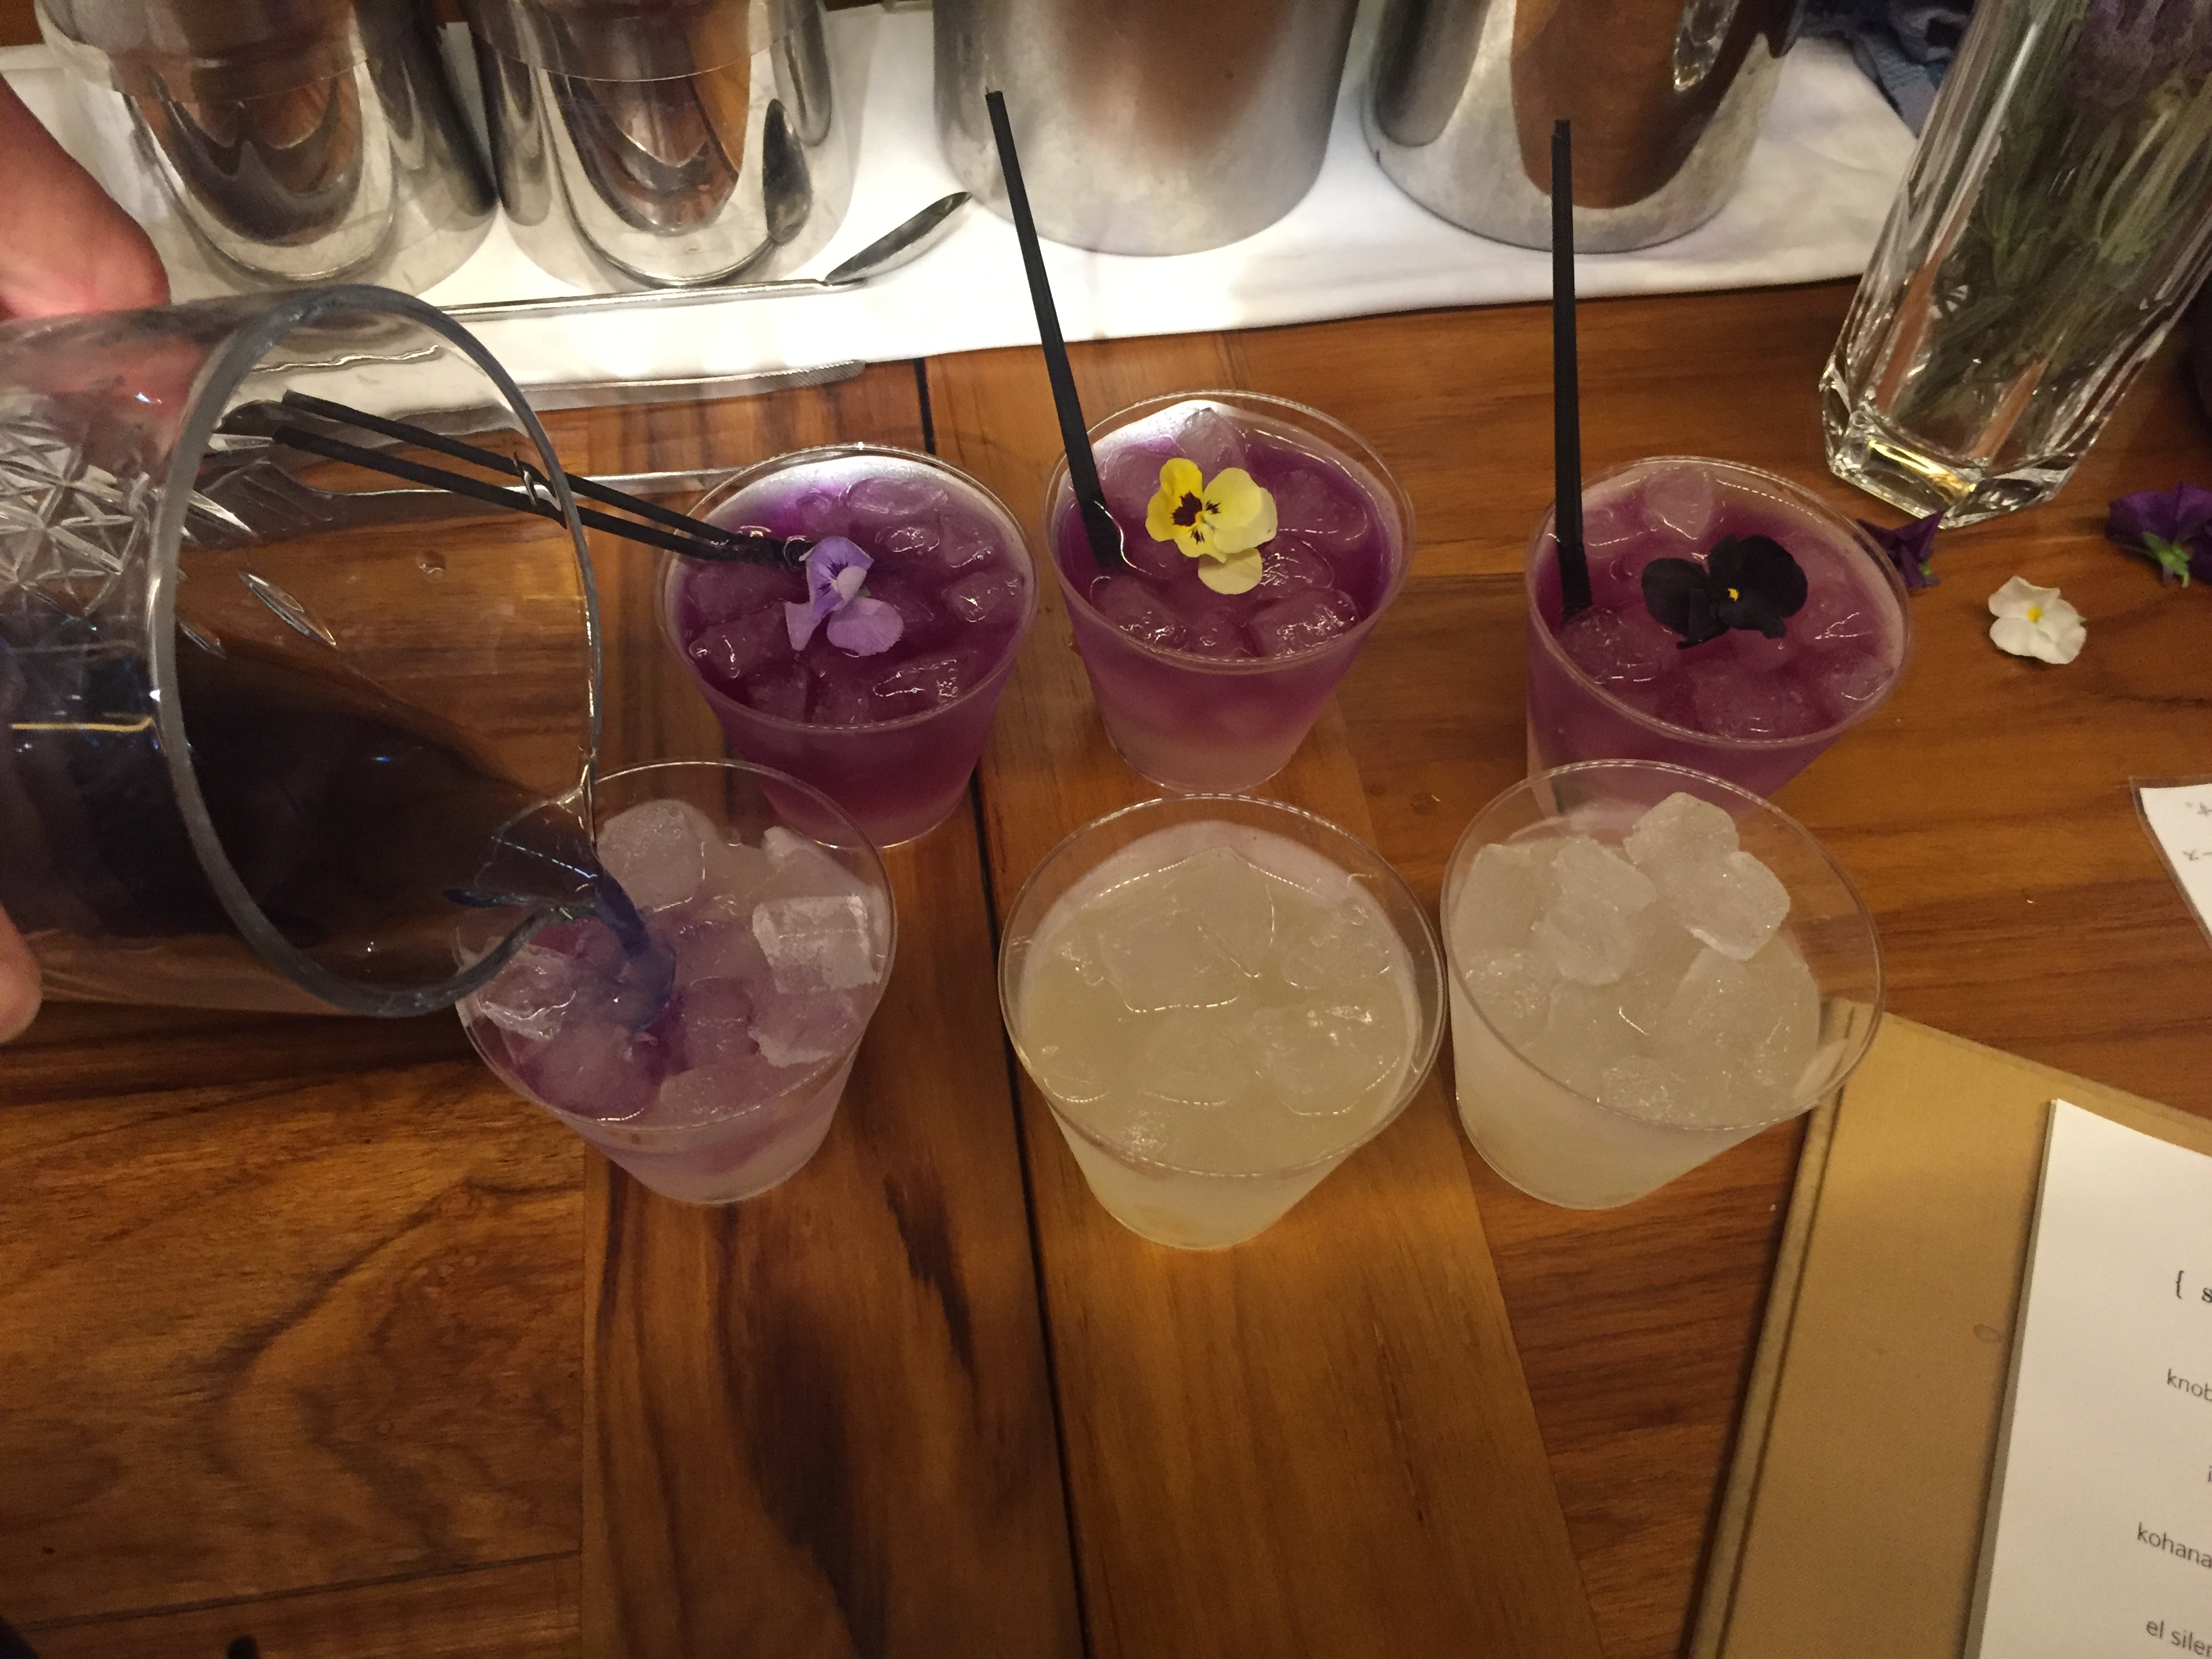 CALL FOR ENTRIES FOR DTRIC INSURANCE'S 2ND ANNUAL HAWAII'S BEST MOCKTAILS CONTEST